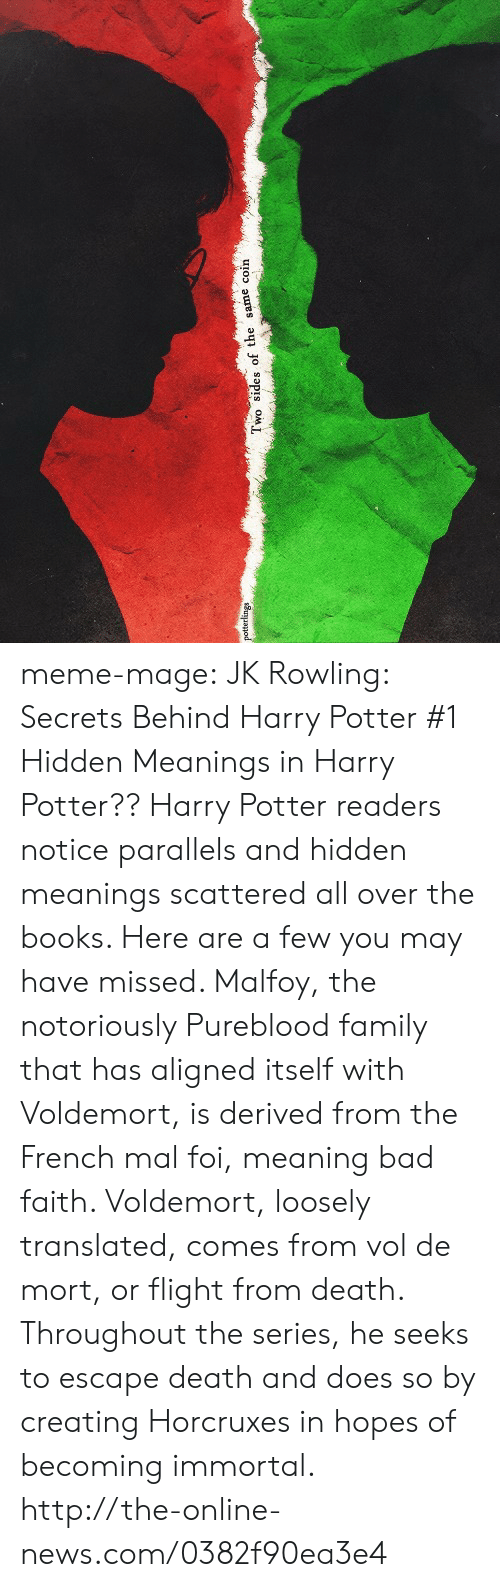 Escape Death: wo sides of the same coin meme-mage:    JK Rowling: Secrets Behind Harry Potter   #1 Hidden Meanings in Harry Potter?? Harry Potter readers notice parallels and hidden meanings scattered all over the books. Here are a few you may have missed. Malfoy, the notoriously Pureblood family that has aligned itself with Voldemort, is derived from the French mal foi, meaning bad faith. Voldemort, loosely translated, comes from vol de mort, or flight from death. Throughout the series, he seeks to escape death and does so by creating Horcruxes in hopes of becoming immortal. http://the-online-news.com/0382f90ea3e4